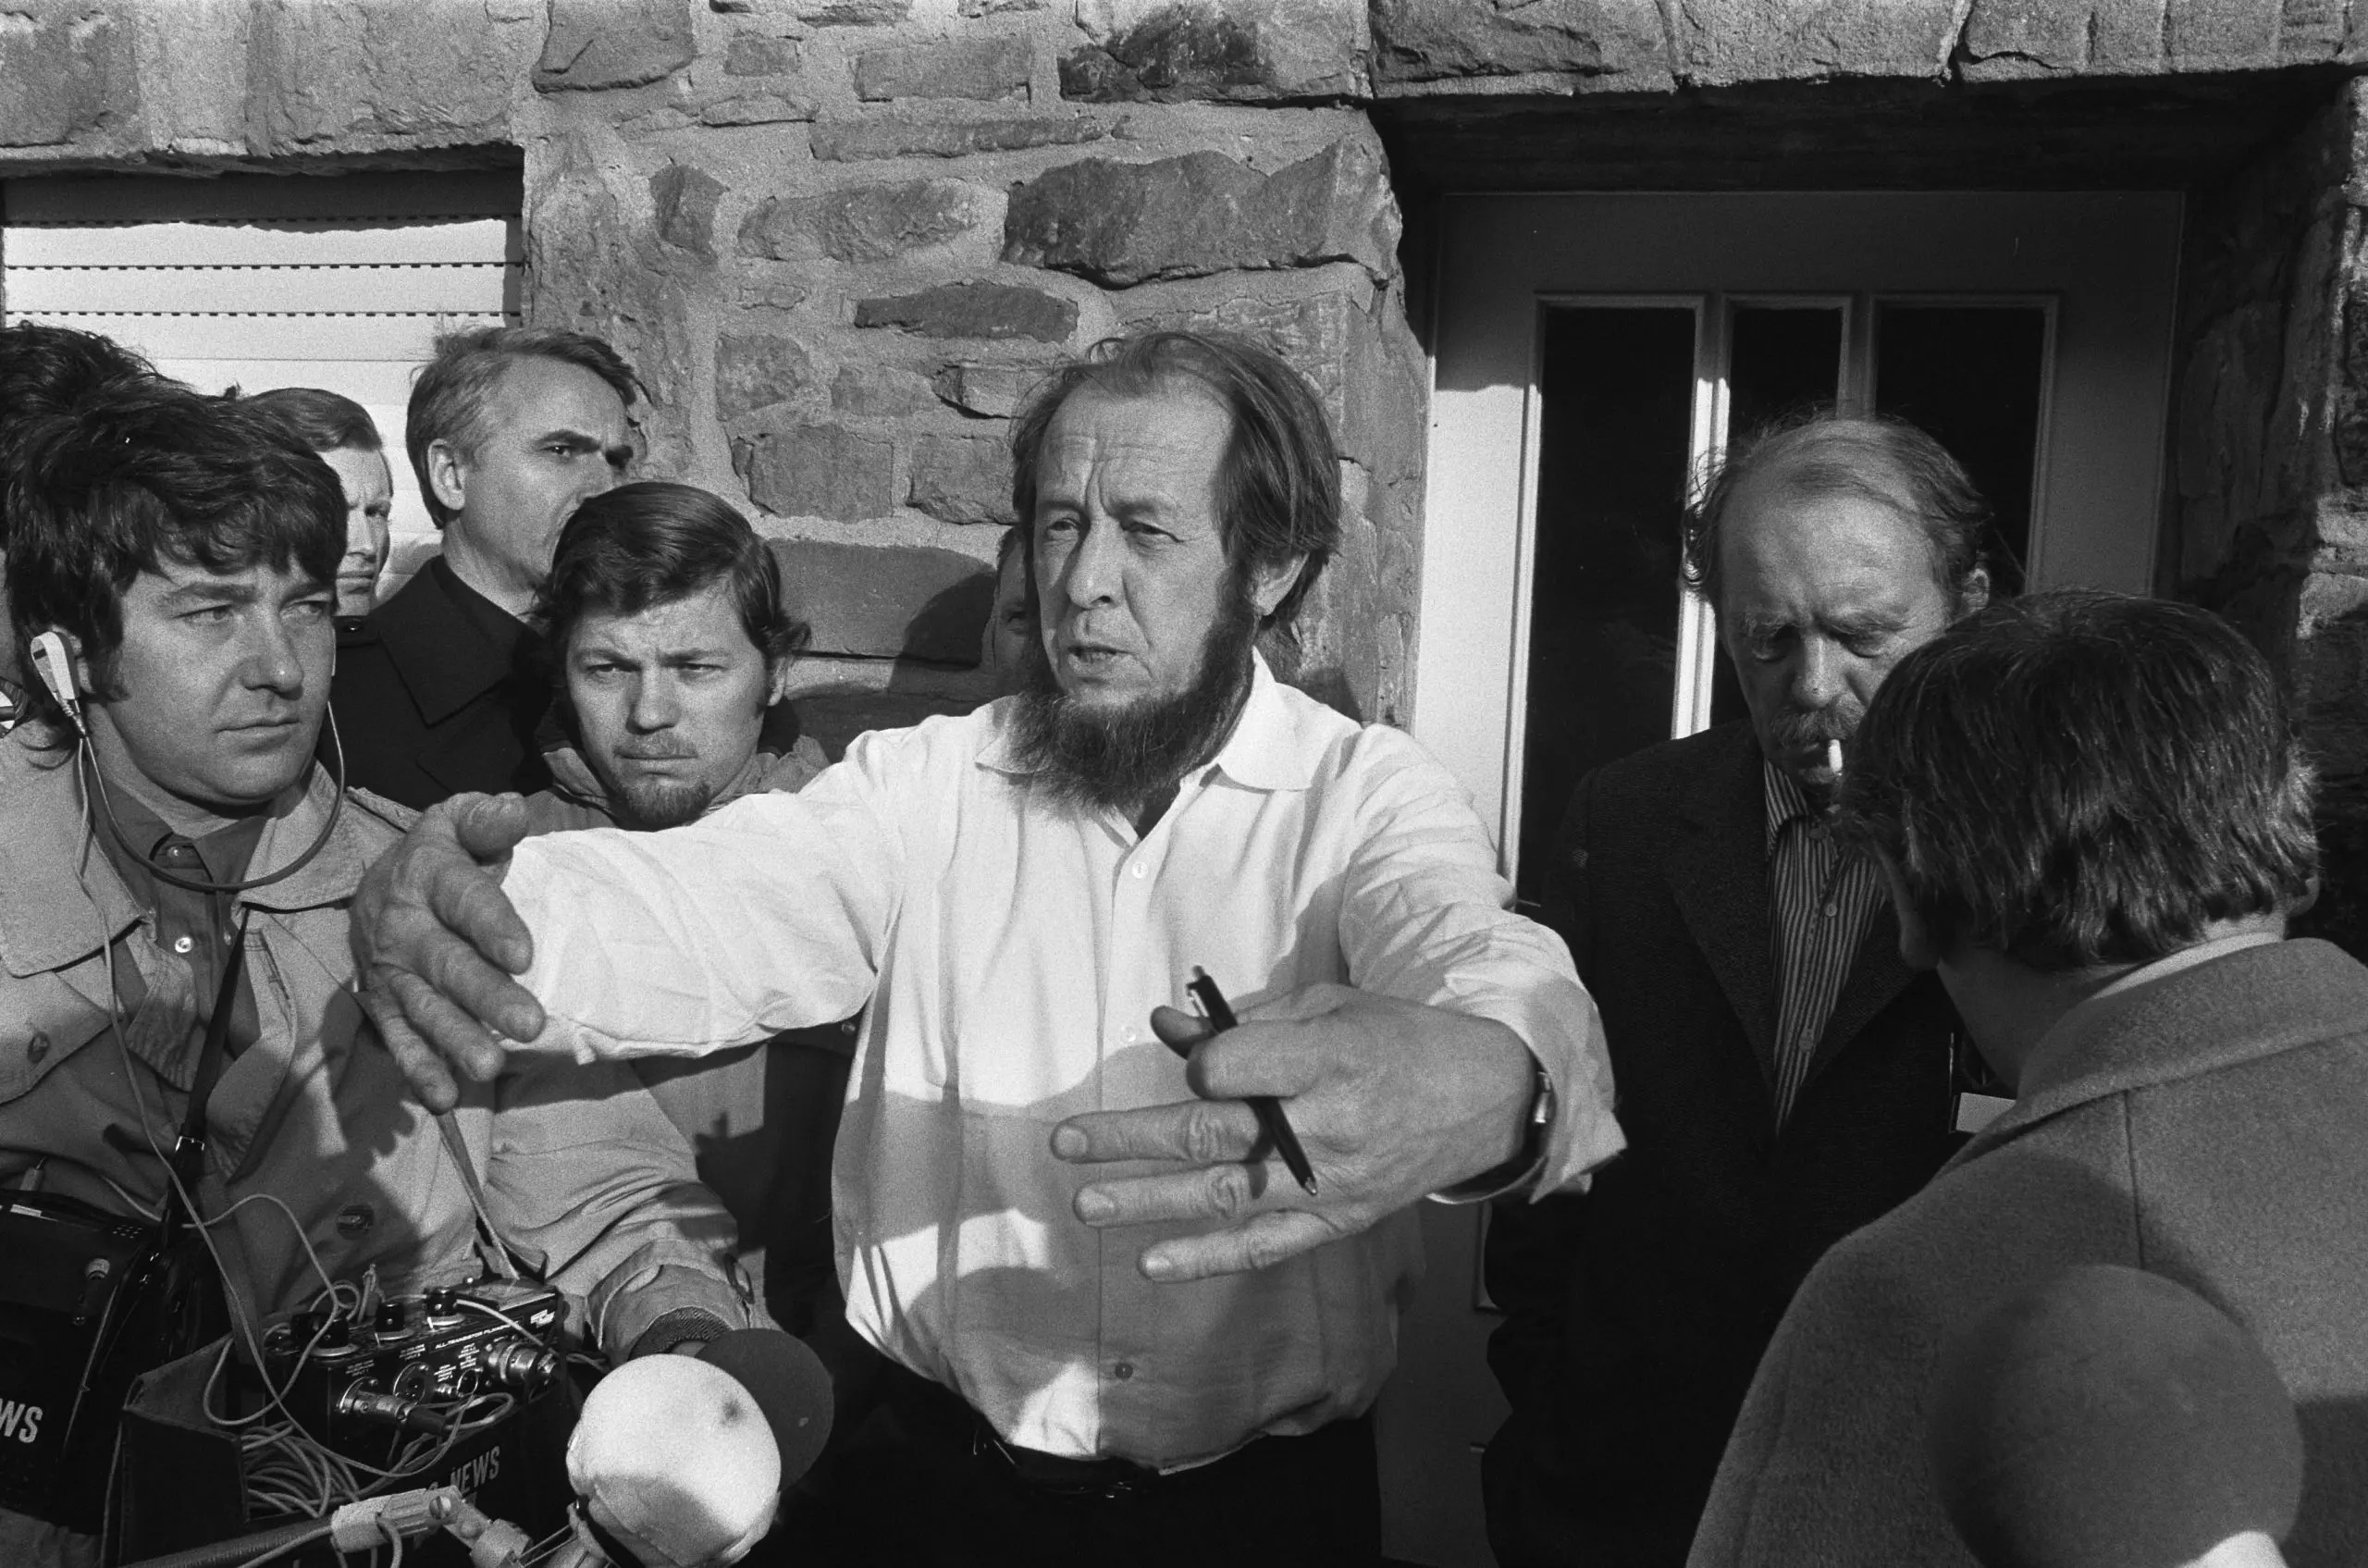 Remember the Date: Aleksandr Solzhenitsyn was awarded the Nobel Prize for literature on 8 October 1970